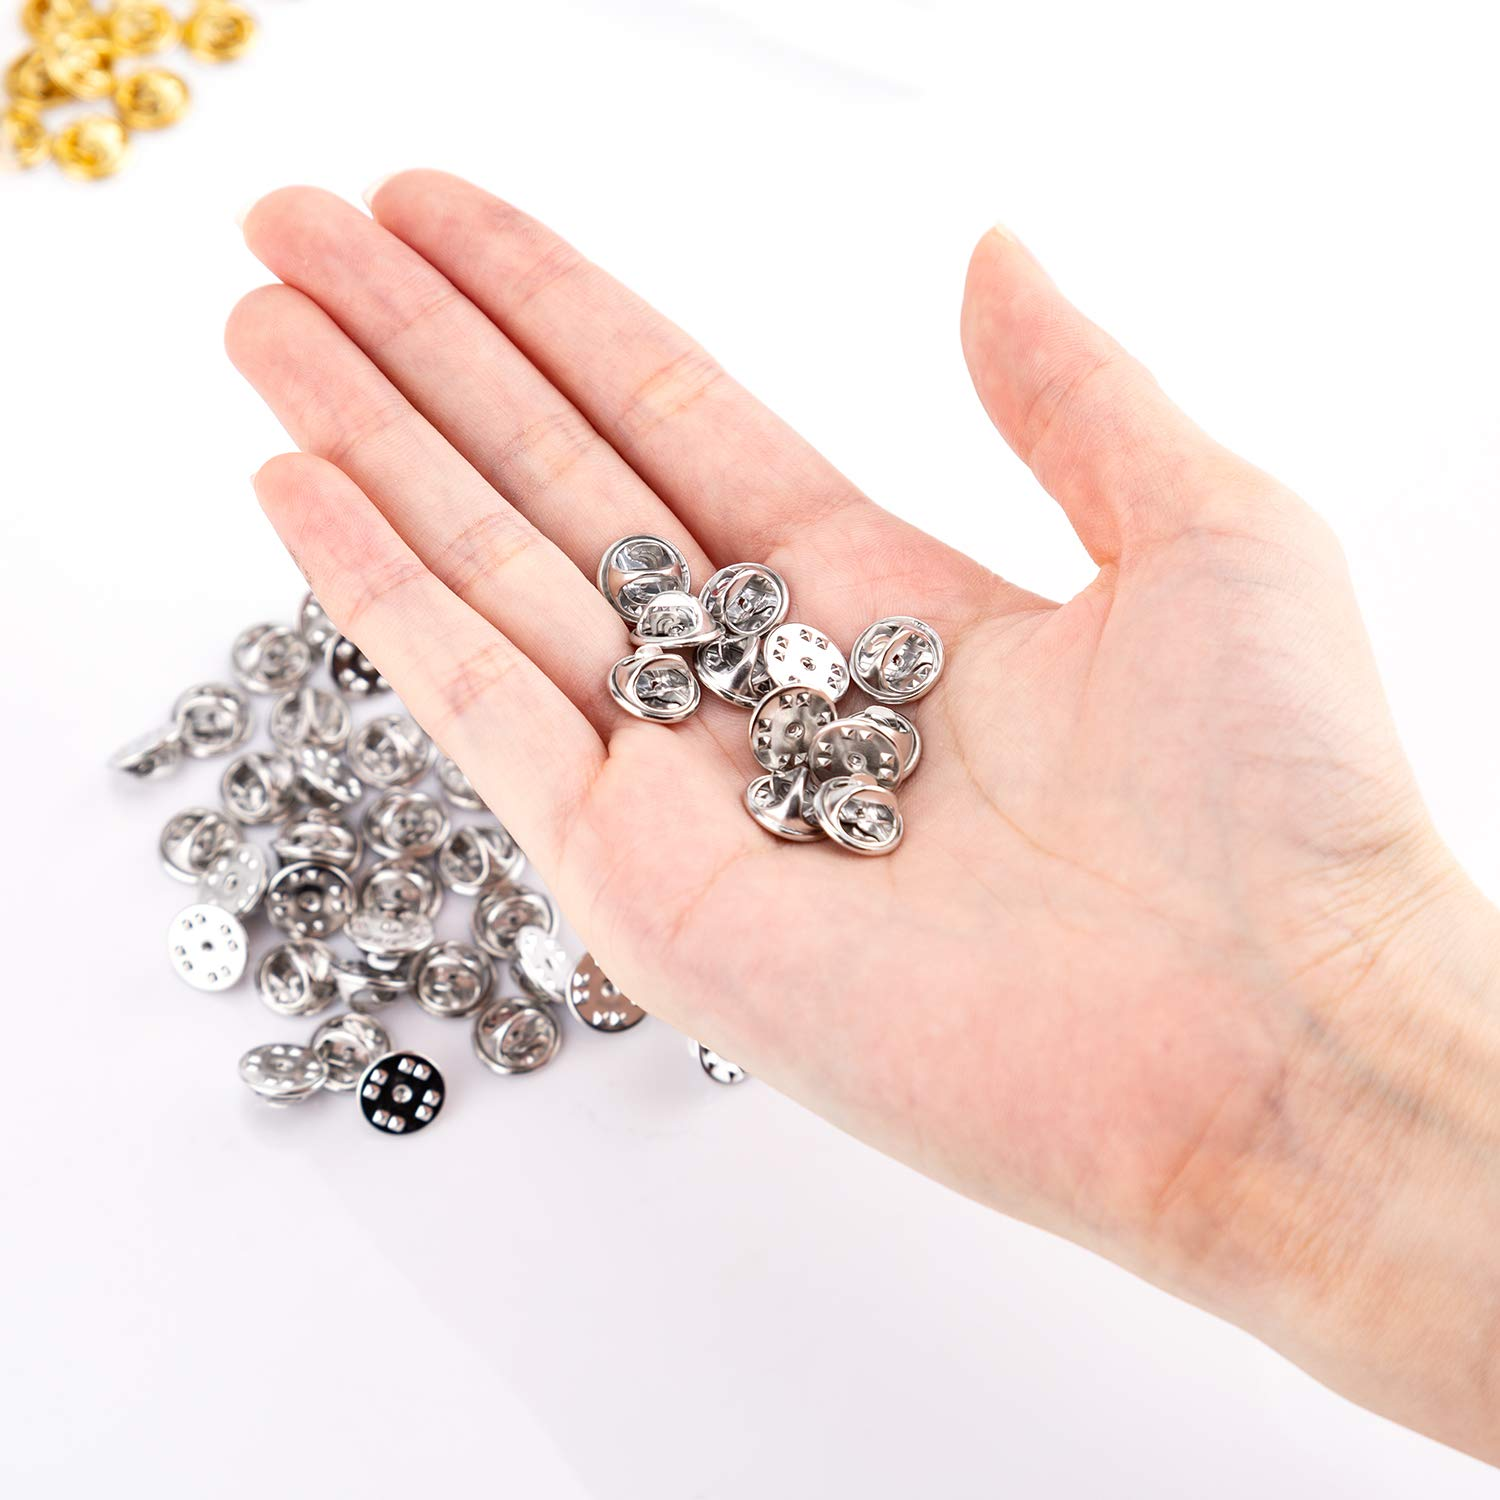 AIEX 60 Pieces Butterfly Clutch Pin Backs 10mm Blank Pins with Clutch Back for Art Crafts Making Silver